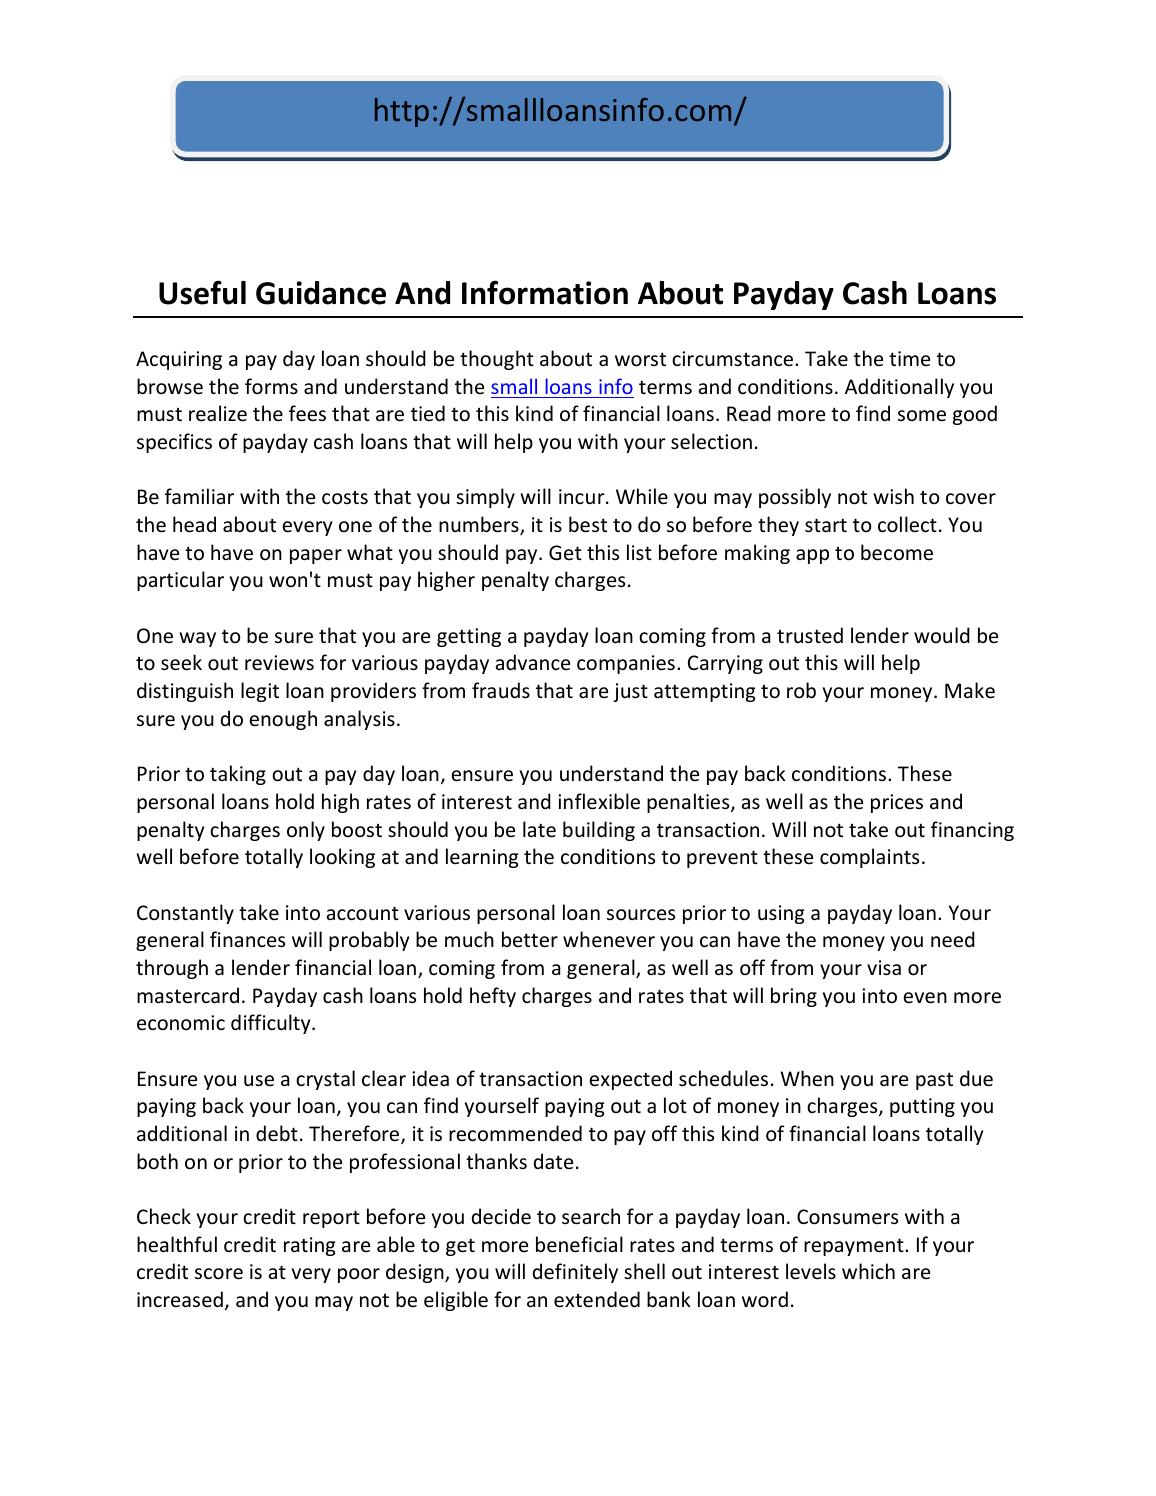 Useful guidance and information about payday cash loans by